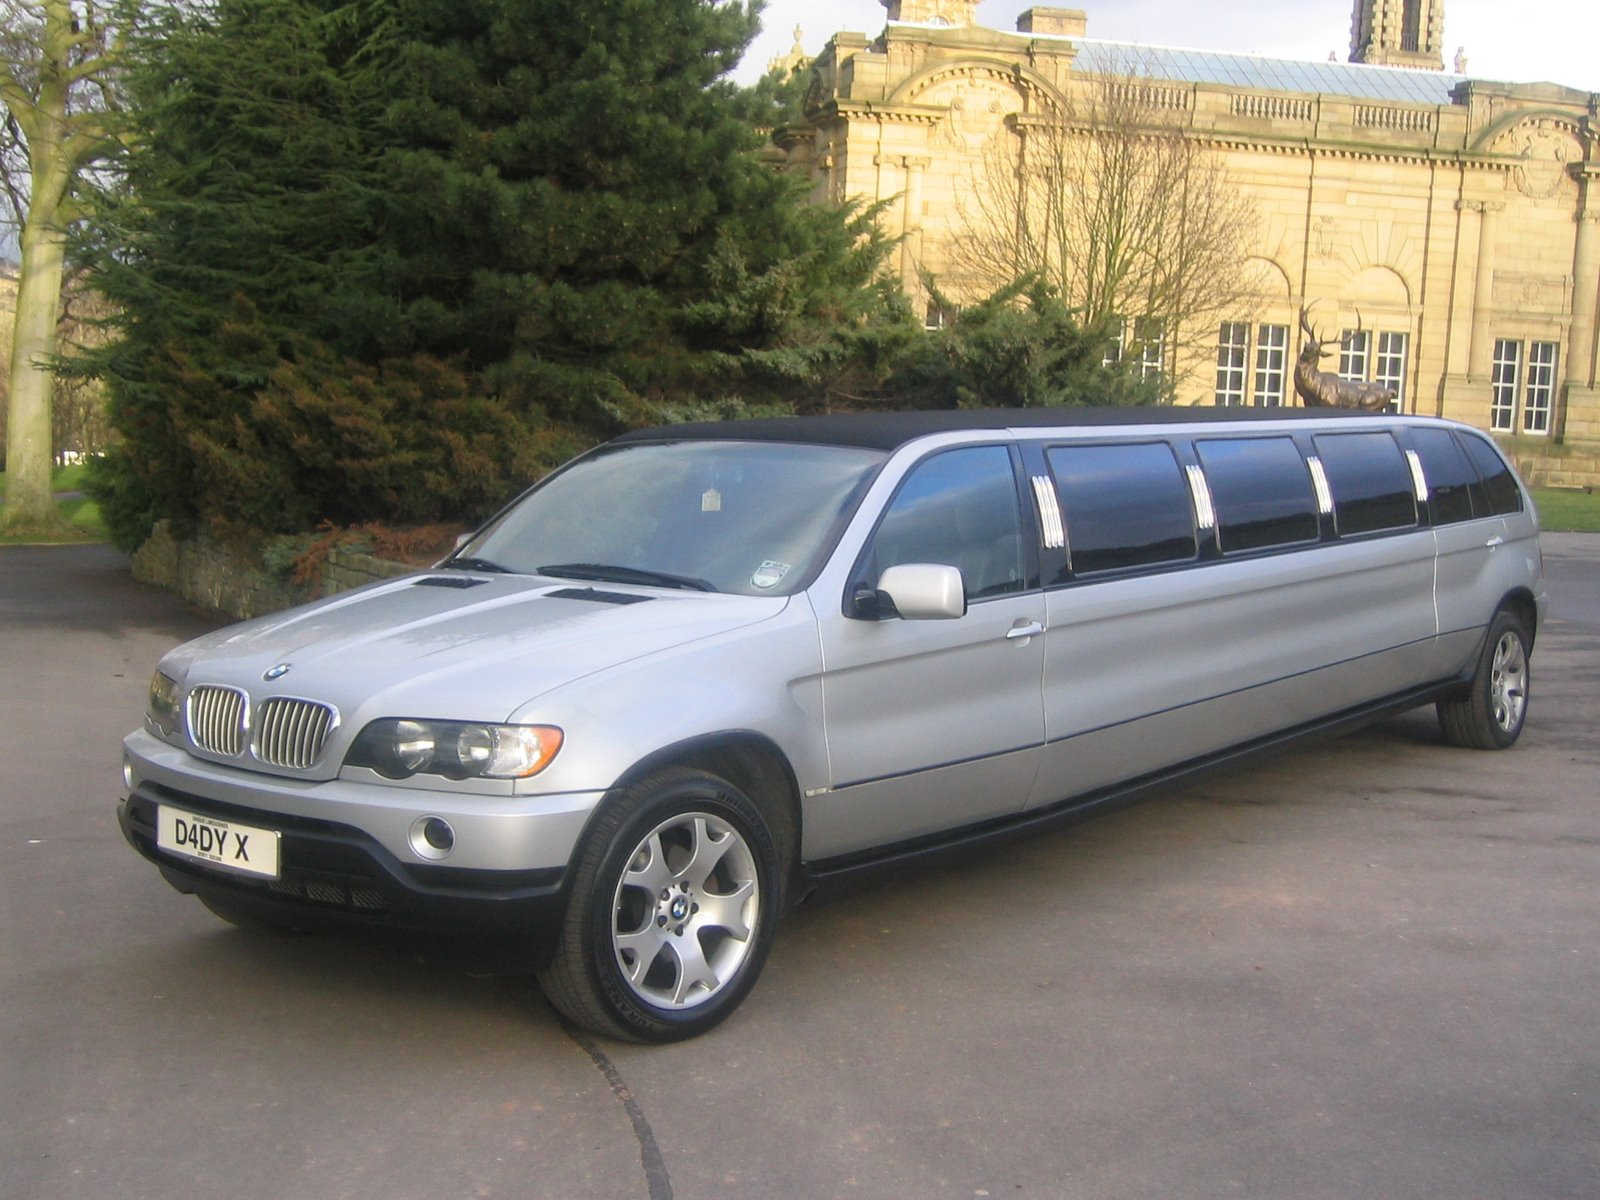 CAR OVERVIEWS BMW And X Limousine Pictures - 2009 bmw 745